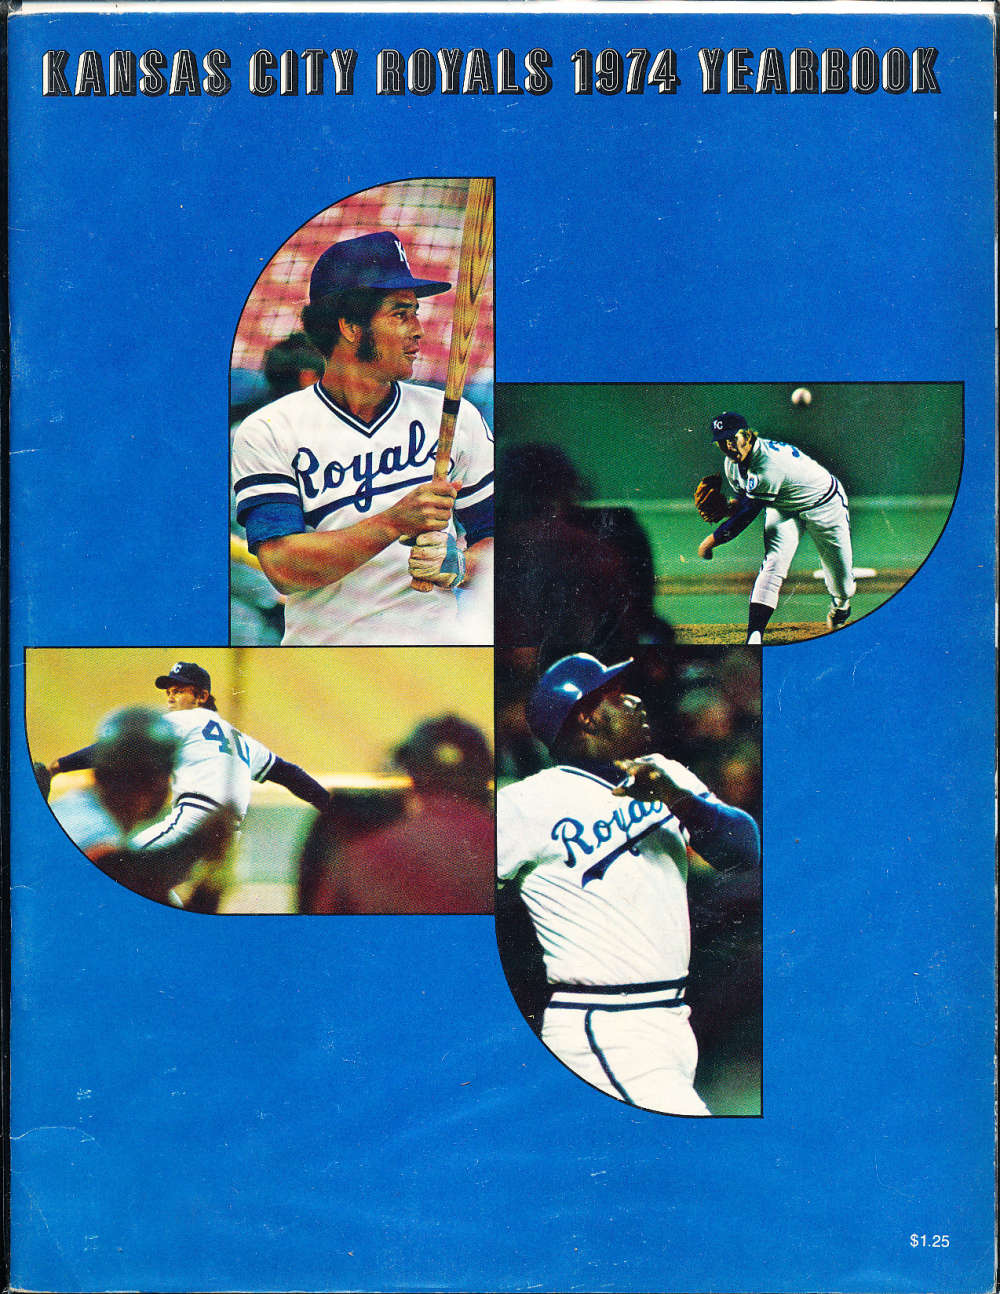 1974 Kansas city Royals baseball yearbook